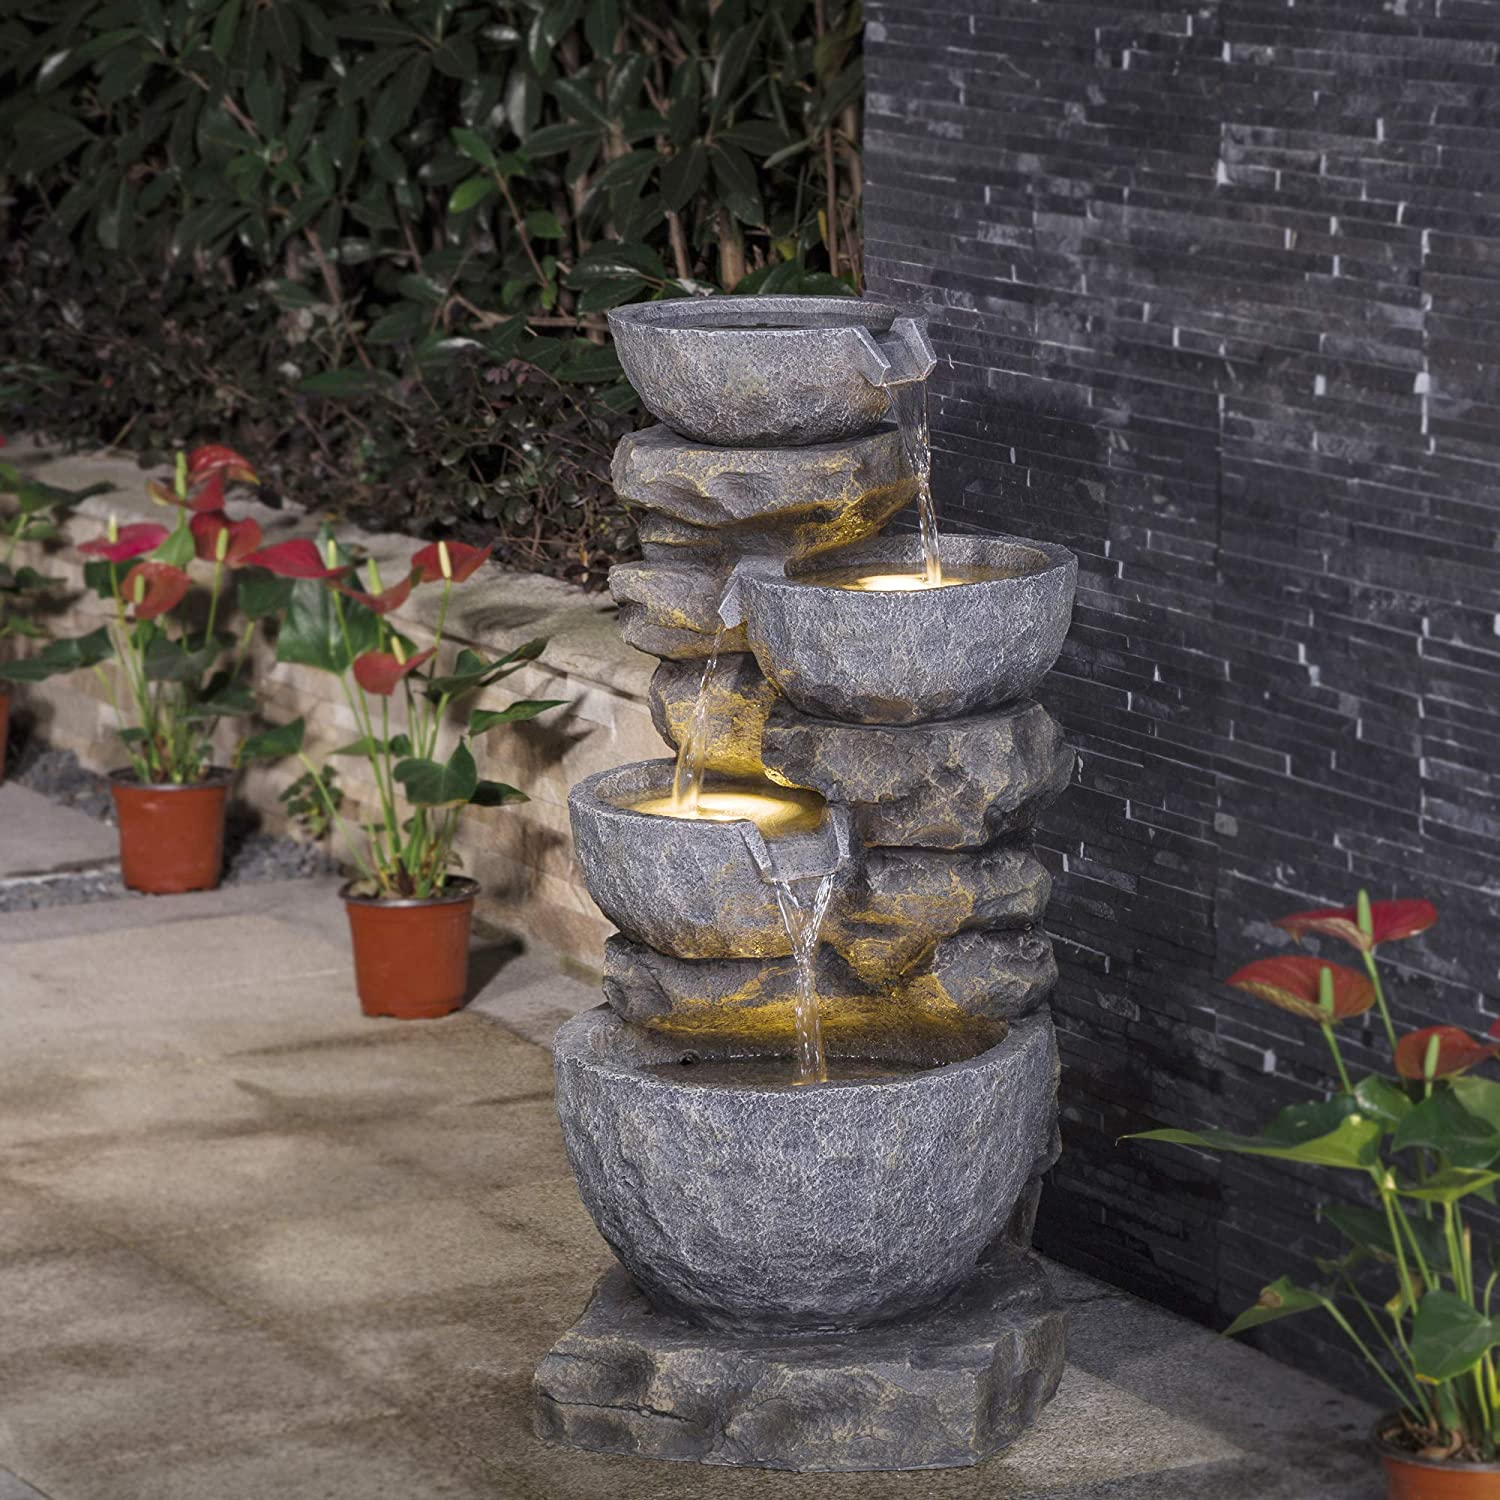 """Glitzhome 4-Tier Patio Fountain Waterfall Staked Outdoor Water Fountain with LED Lights Patio Water Fountain Garden Waterfall Decorative Vintage Water Fountain for Garden Patio Deck Porch, 32""""H"""